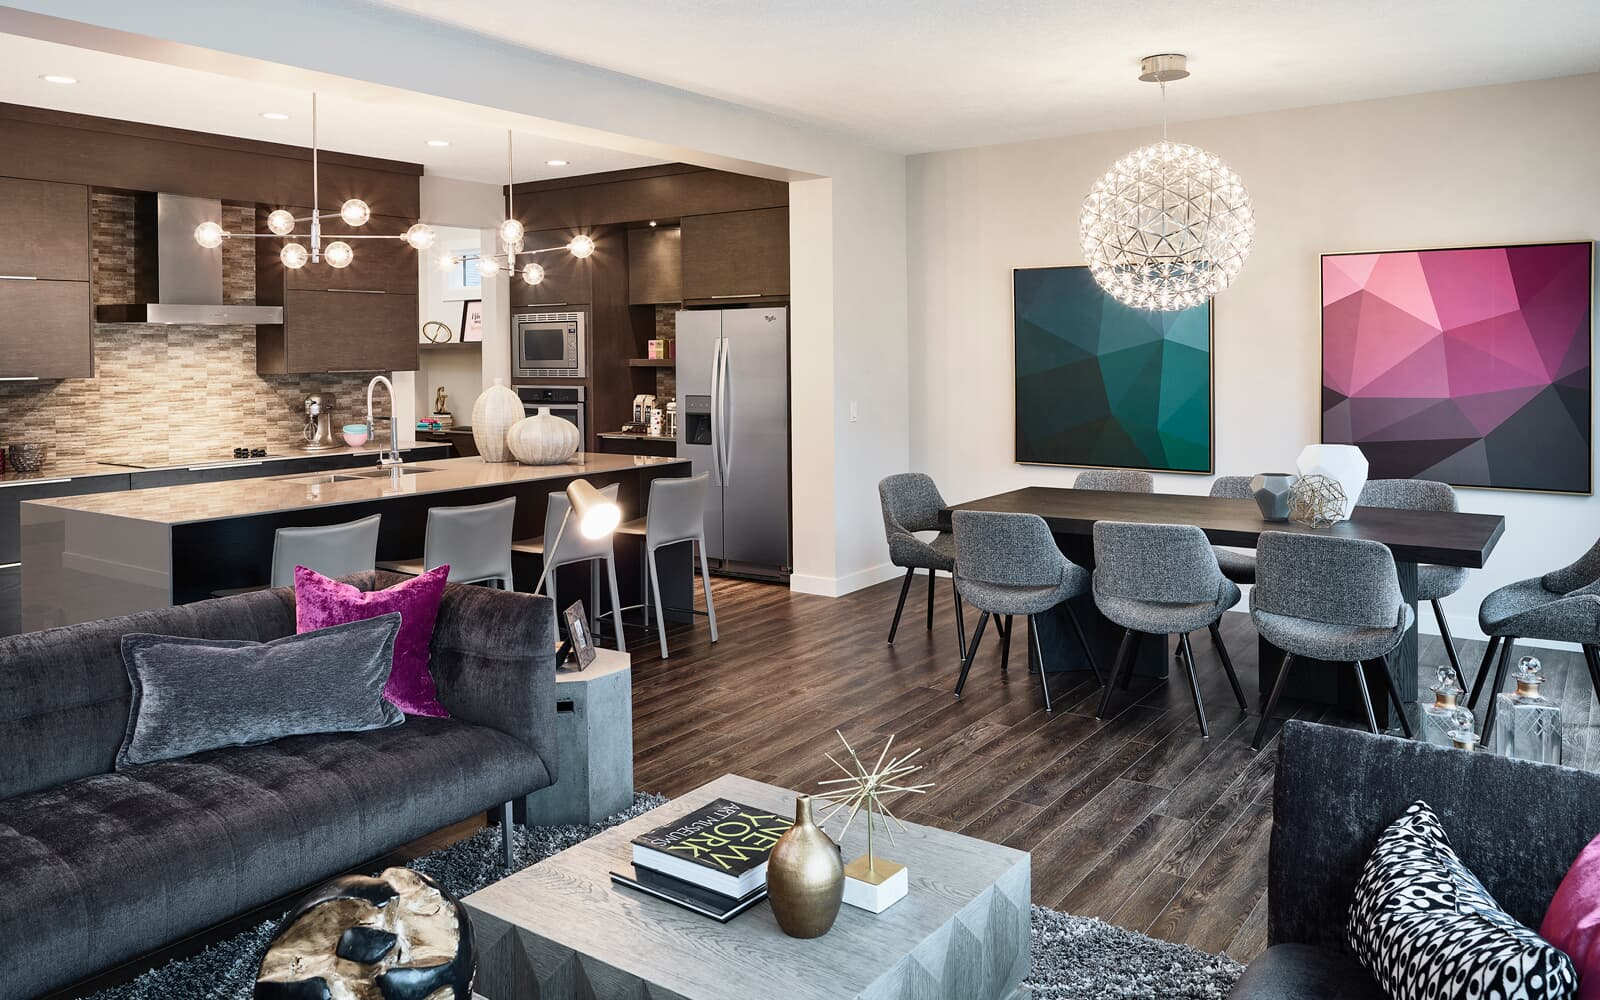 kitchen-versa-west-grove-calgary-alberta